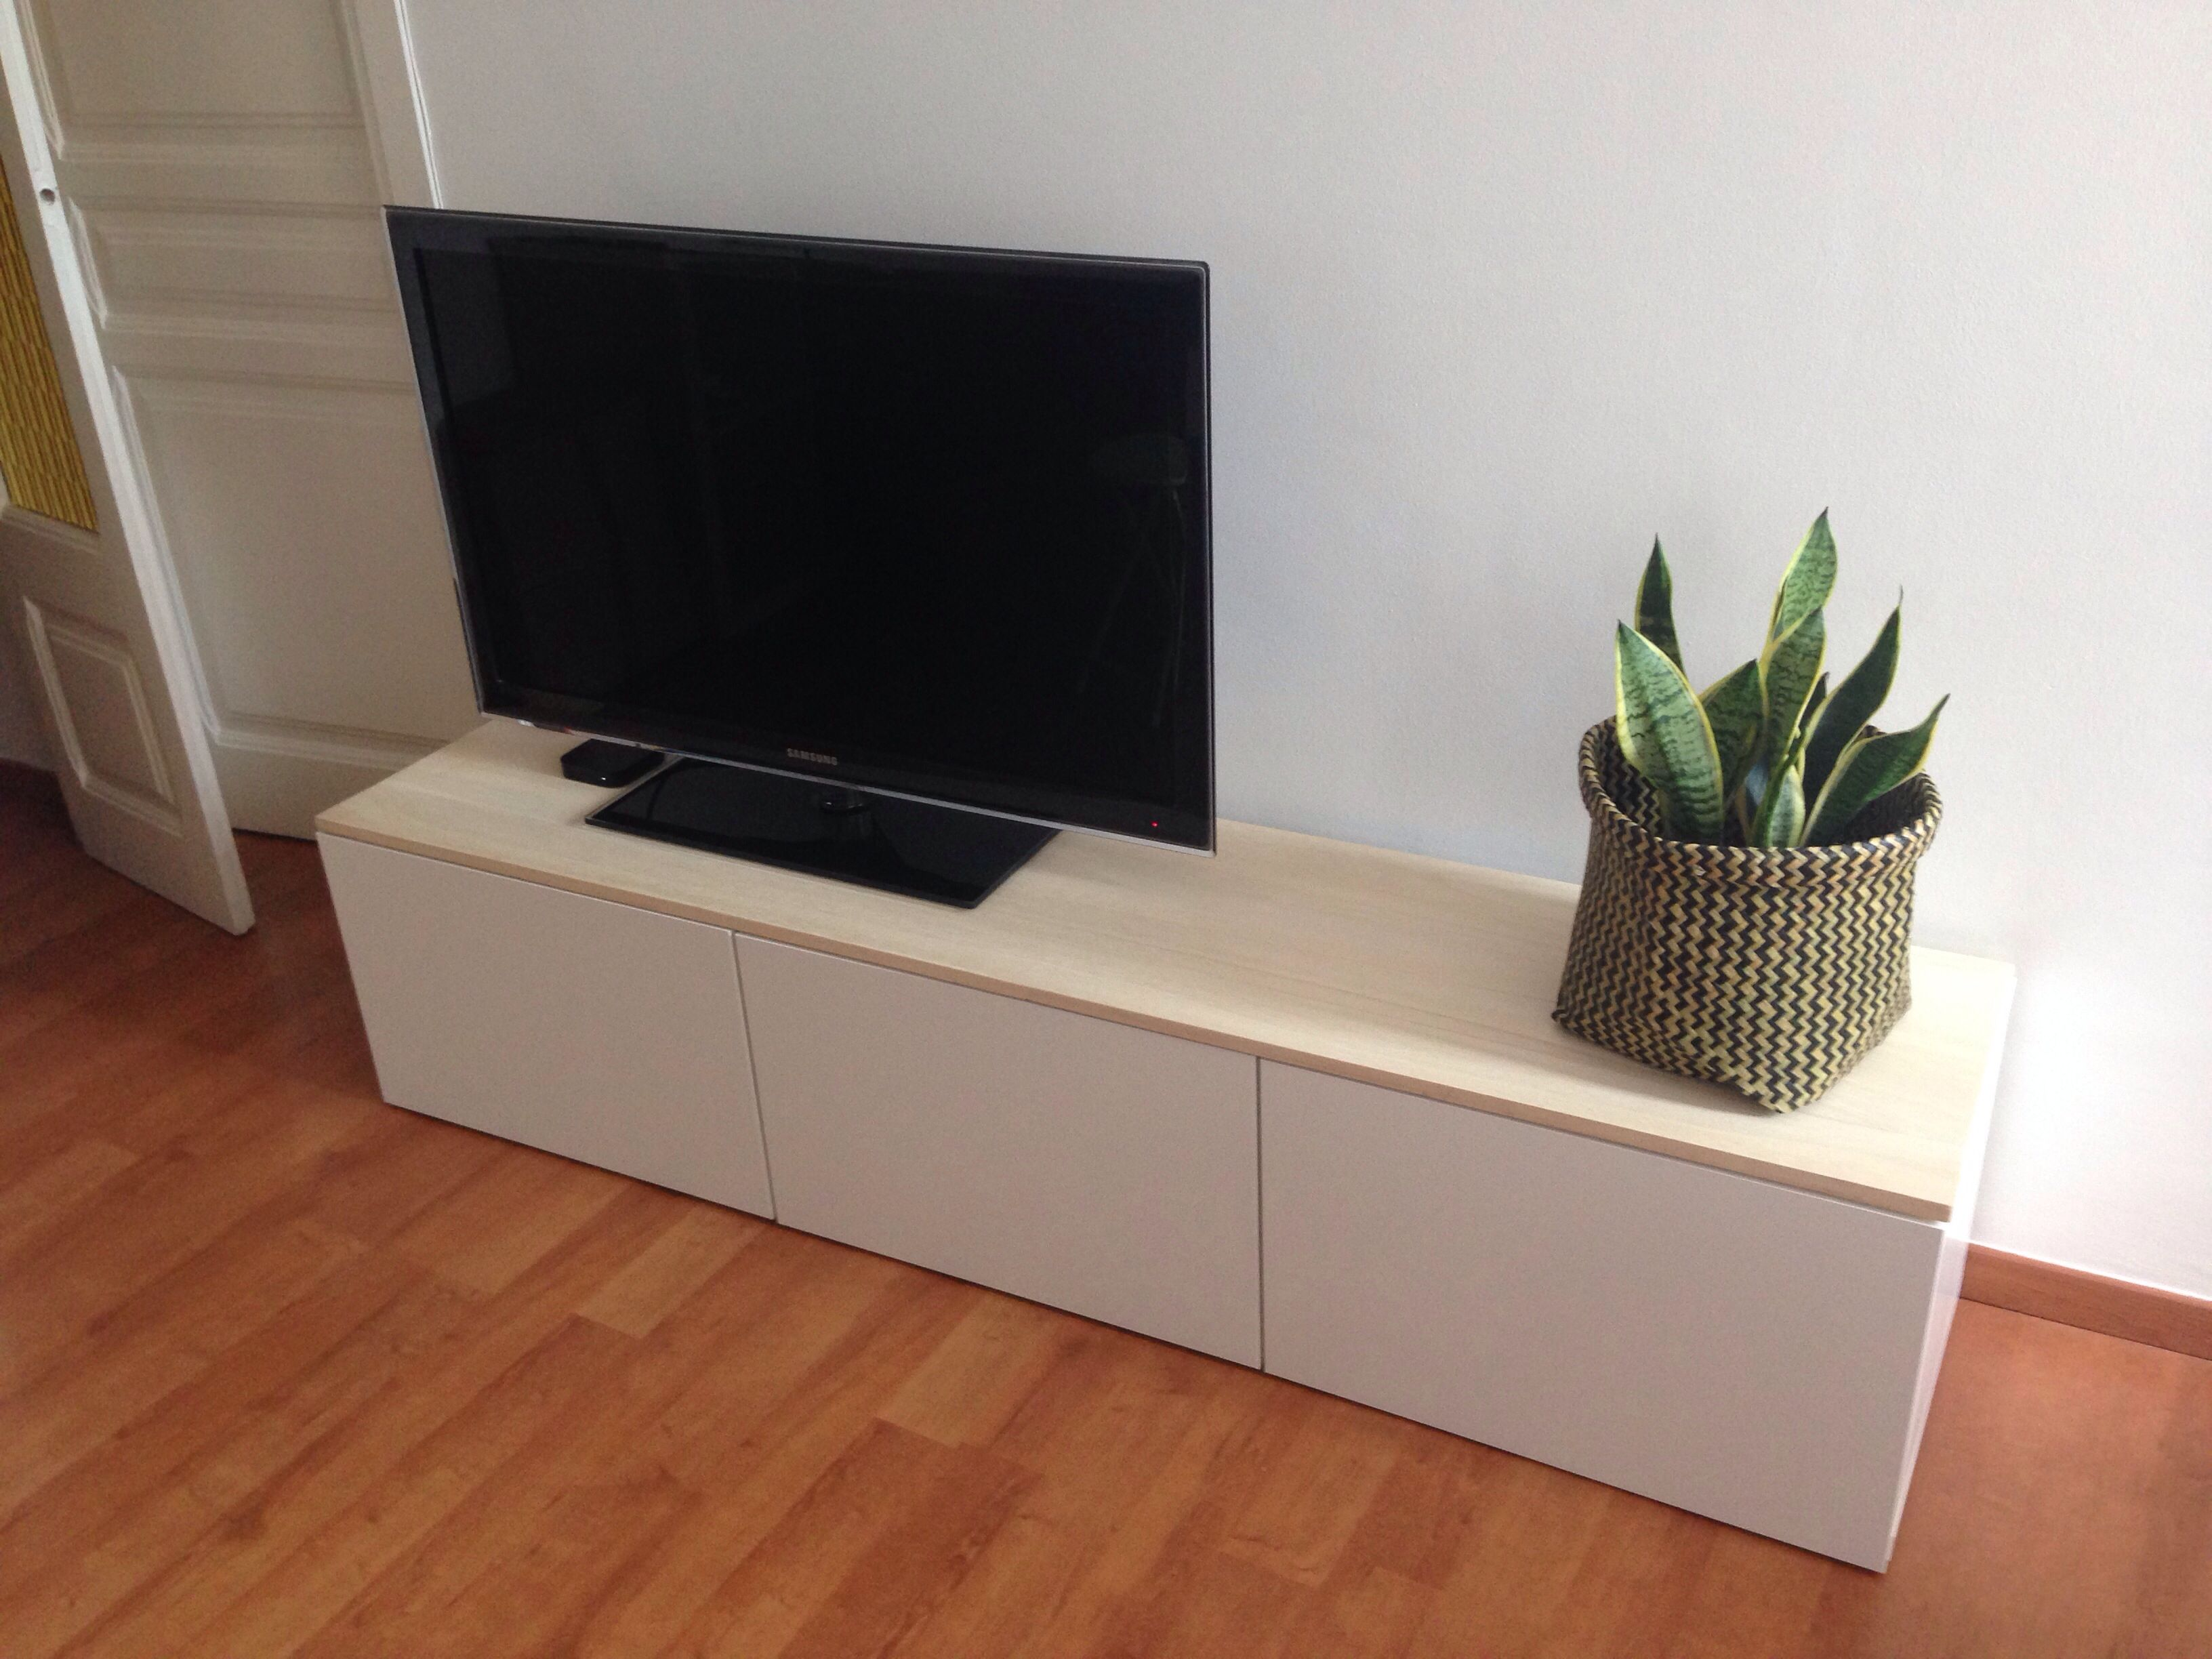 Muebles De Tv De Ikea Mueble Tv Besta Blanco De Ikea Decorado Con Tablón De